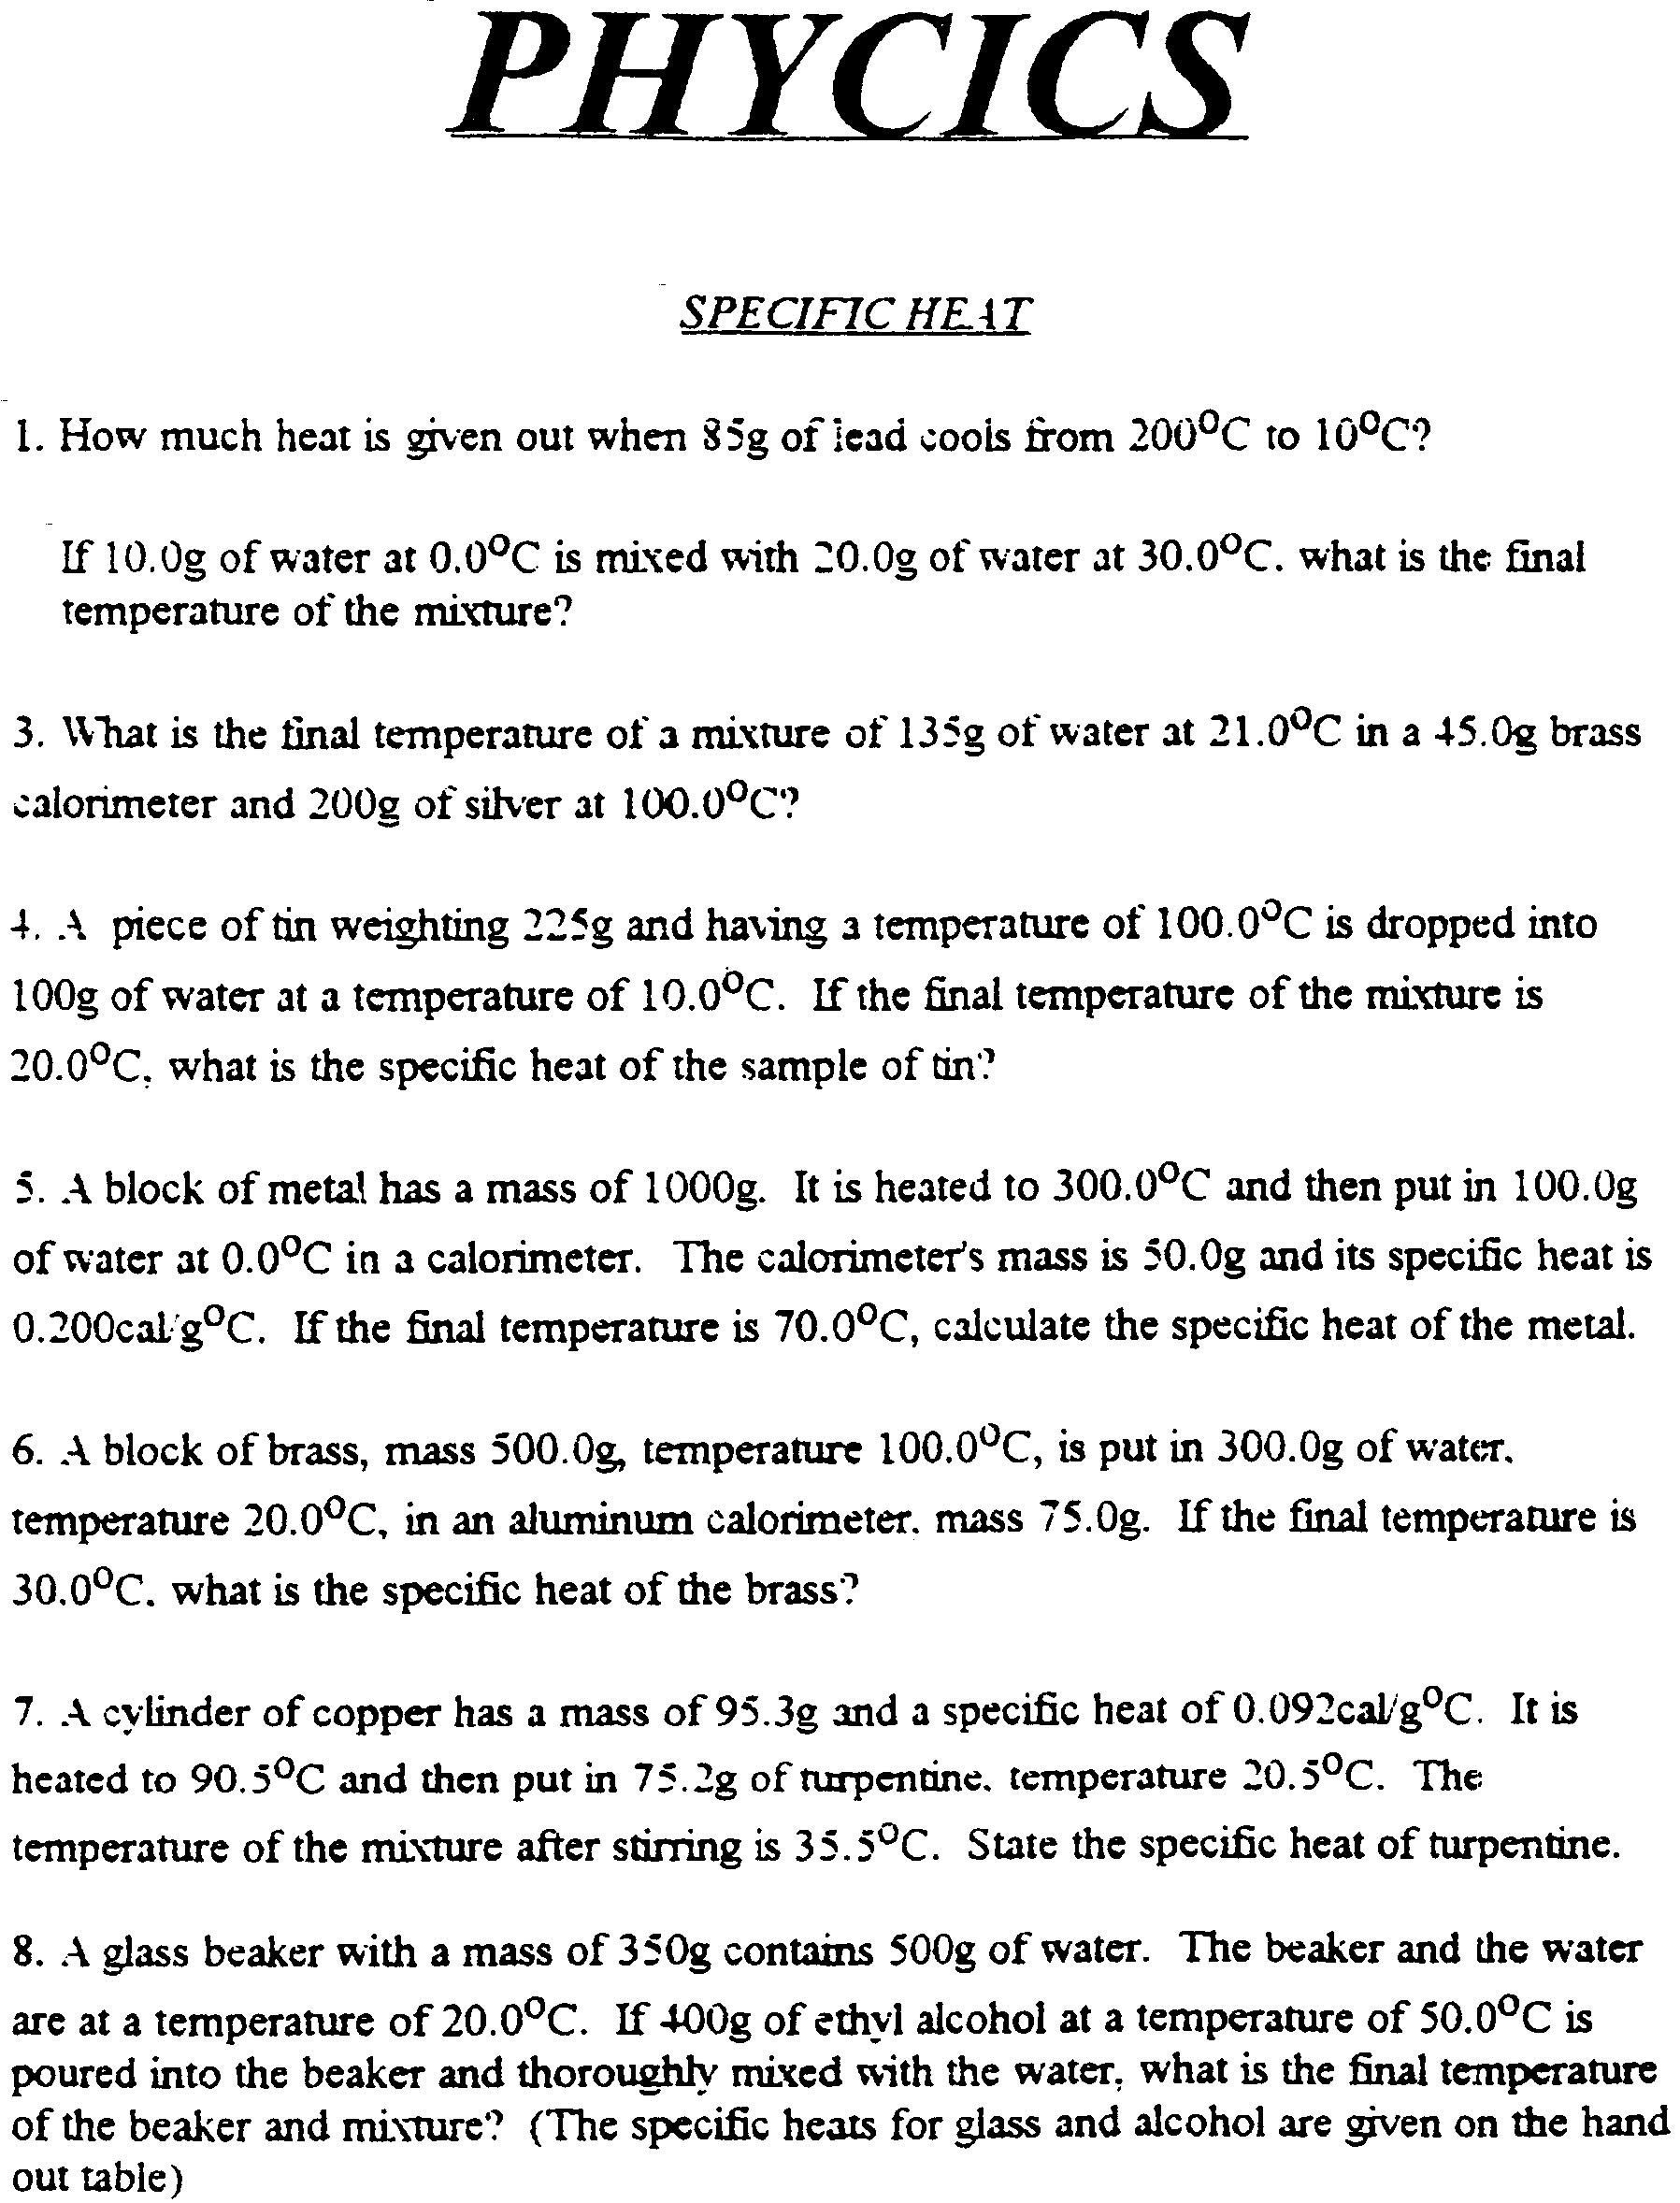 Worksheets Electrostatics Worksheet this page contains the tentative phycics worksheet